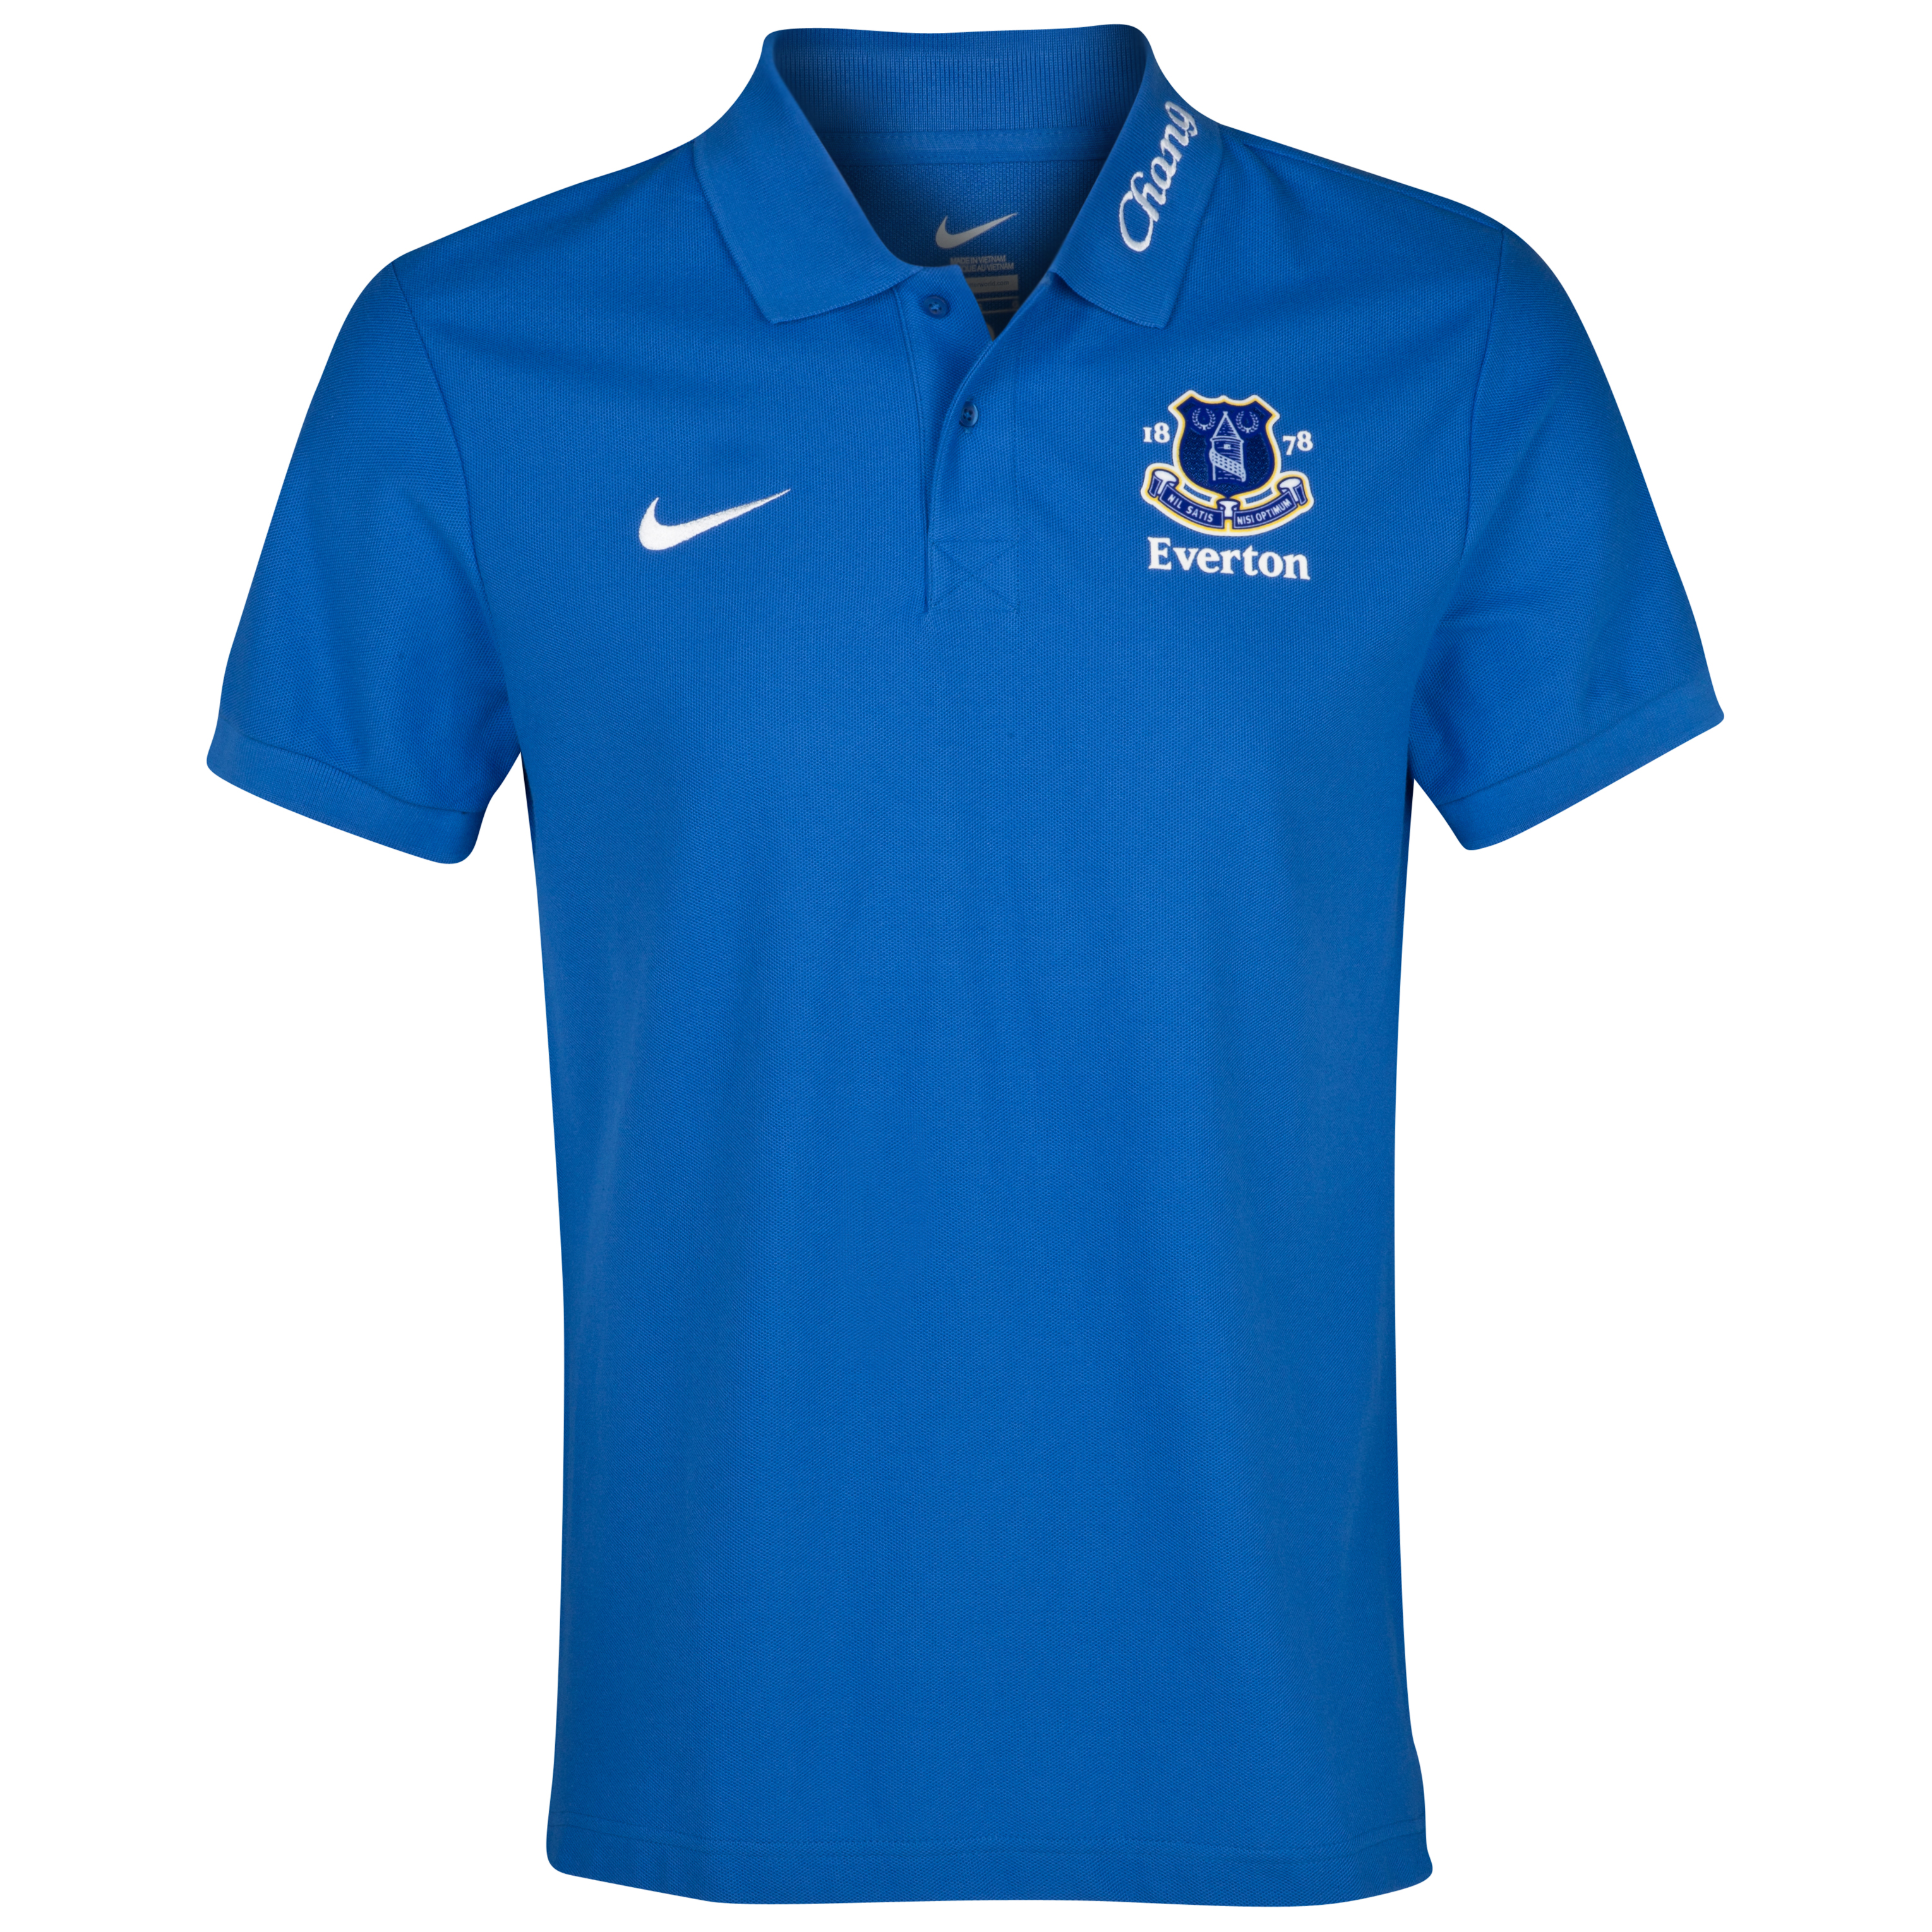 Everton Media Polo Shirt - Royal Blue/White